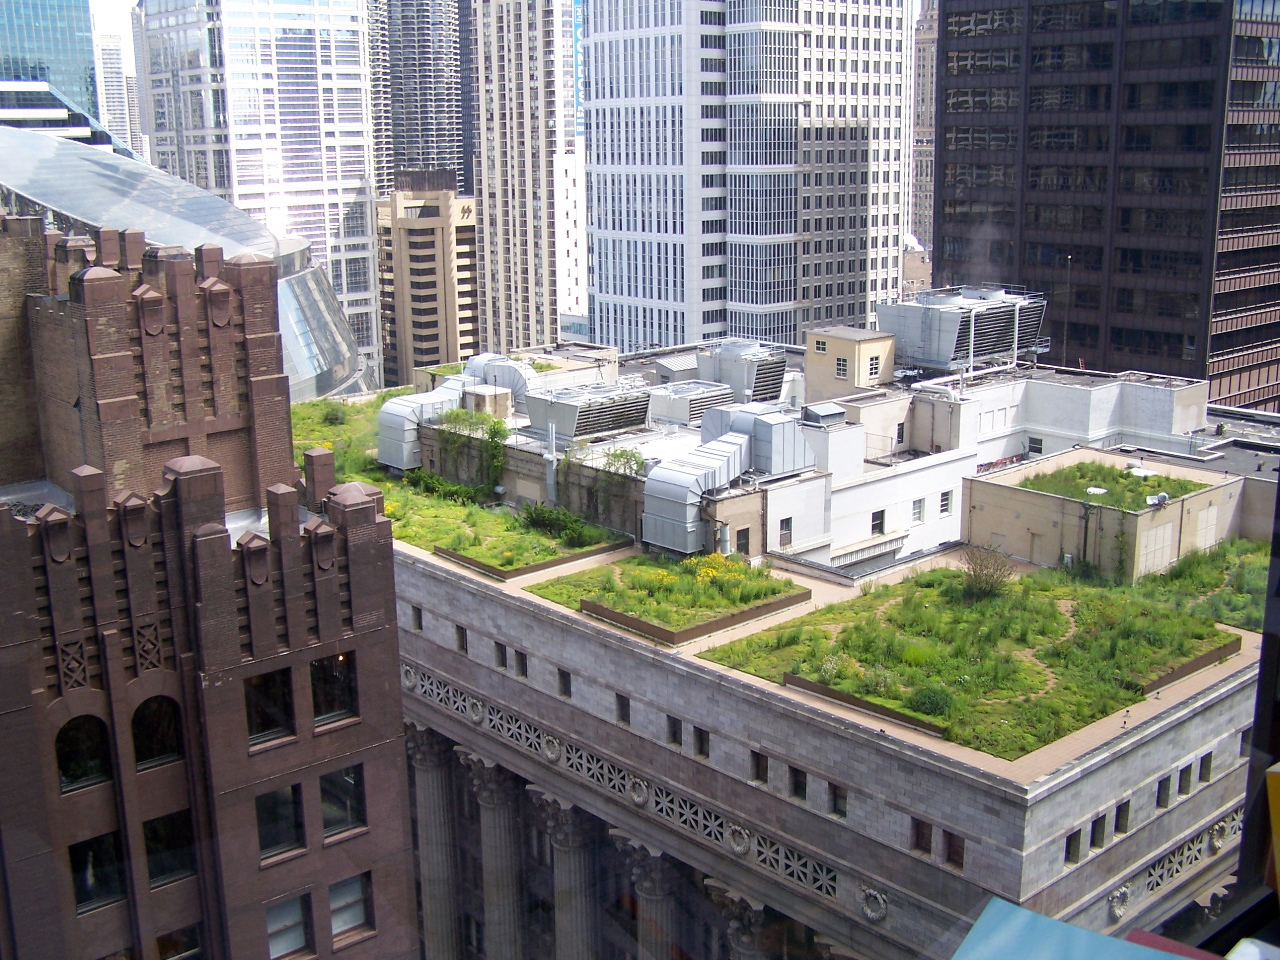 Green roof installation on Chicago City Hall. Green roofs collect and retain storm runoff keeping it from entering combined sewer systems.